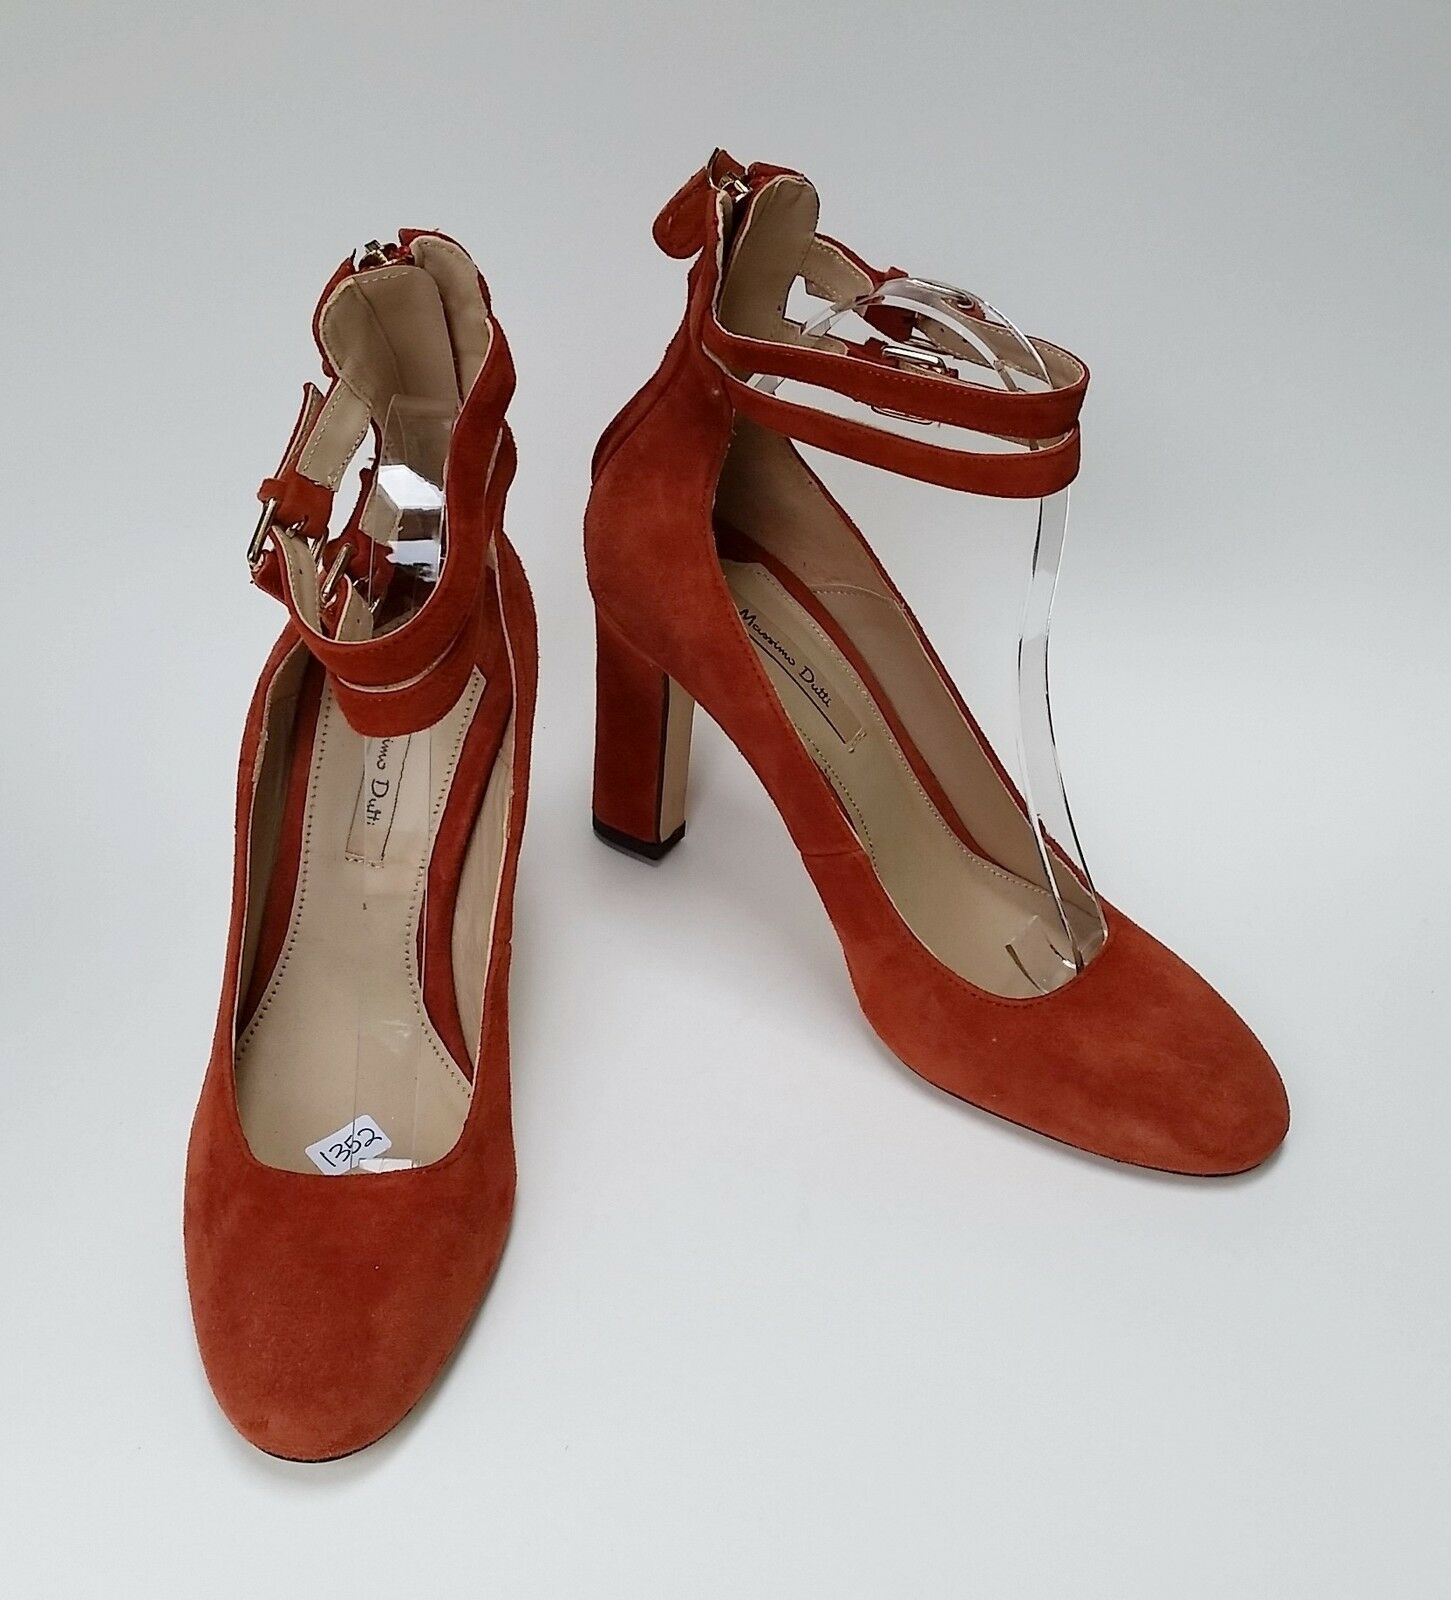 Massimo Dutti chaussures Heels Burnt Burnt Burnt Orange Rust 2 Ankle Straps Suede femmes Taille 39 e13460